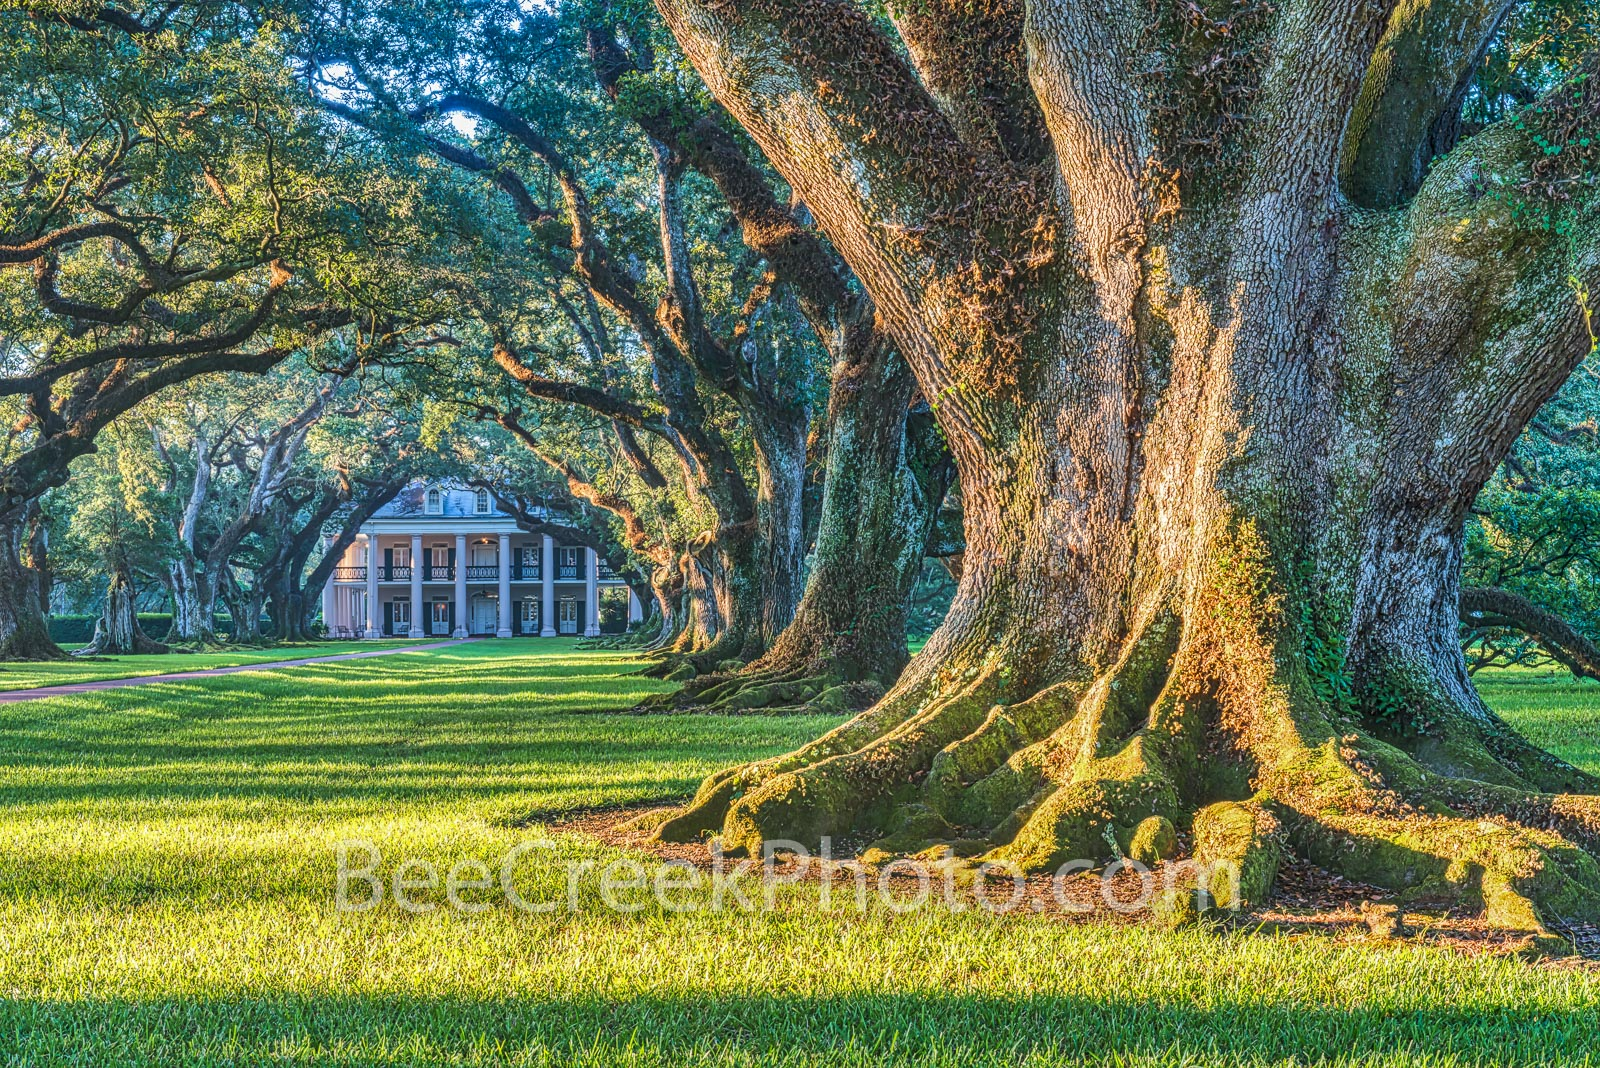 Lousiana, Oak Alley Plantation, Oak Alley, sunrise, big house, branches, mansion, oak trees, plantation, roots, sidewalk, slaves, sugar cane, canopied path, seven oaks, oak valley, National Historic l, photo